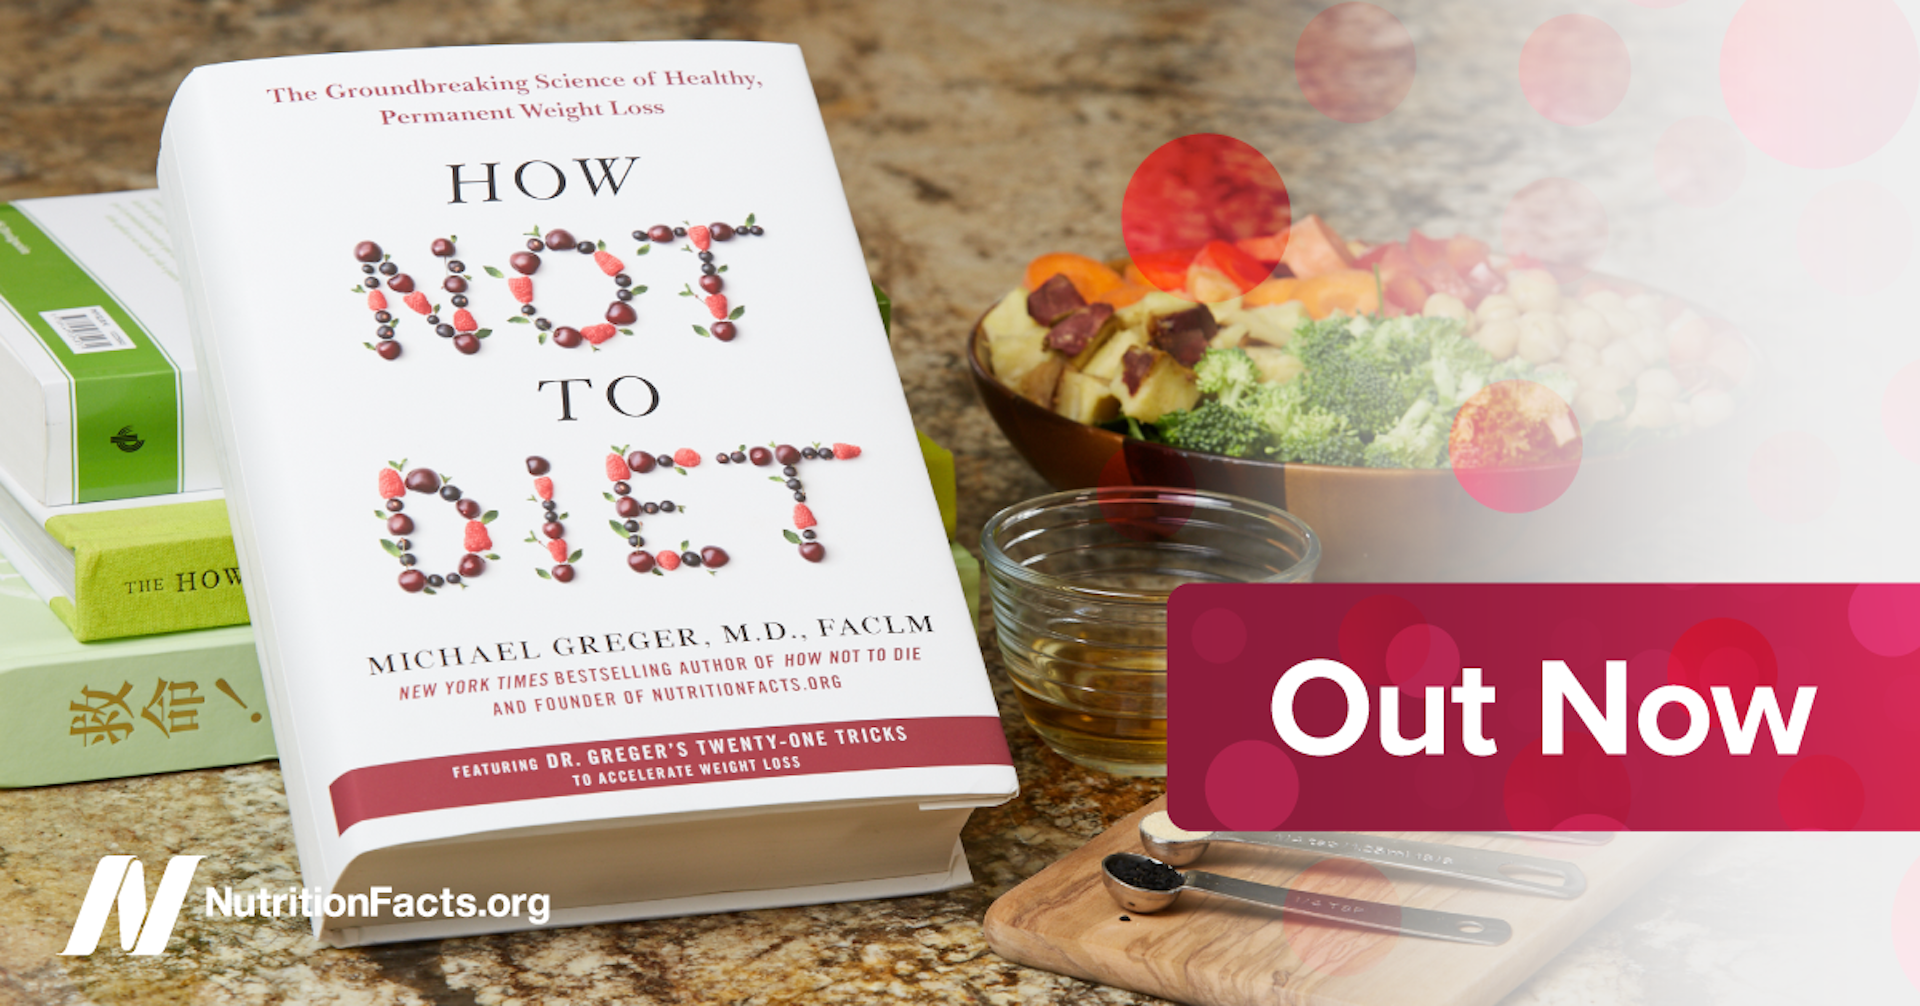 How Not to Diet Out Now